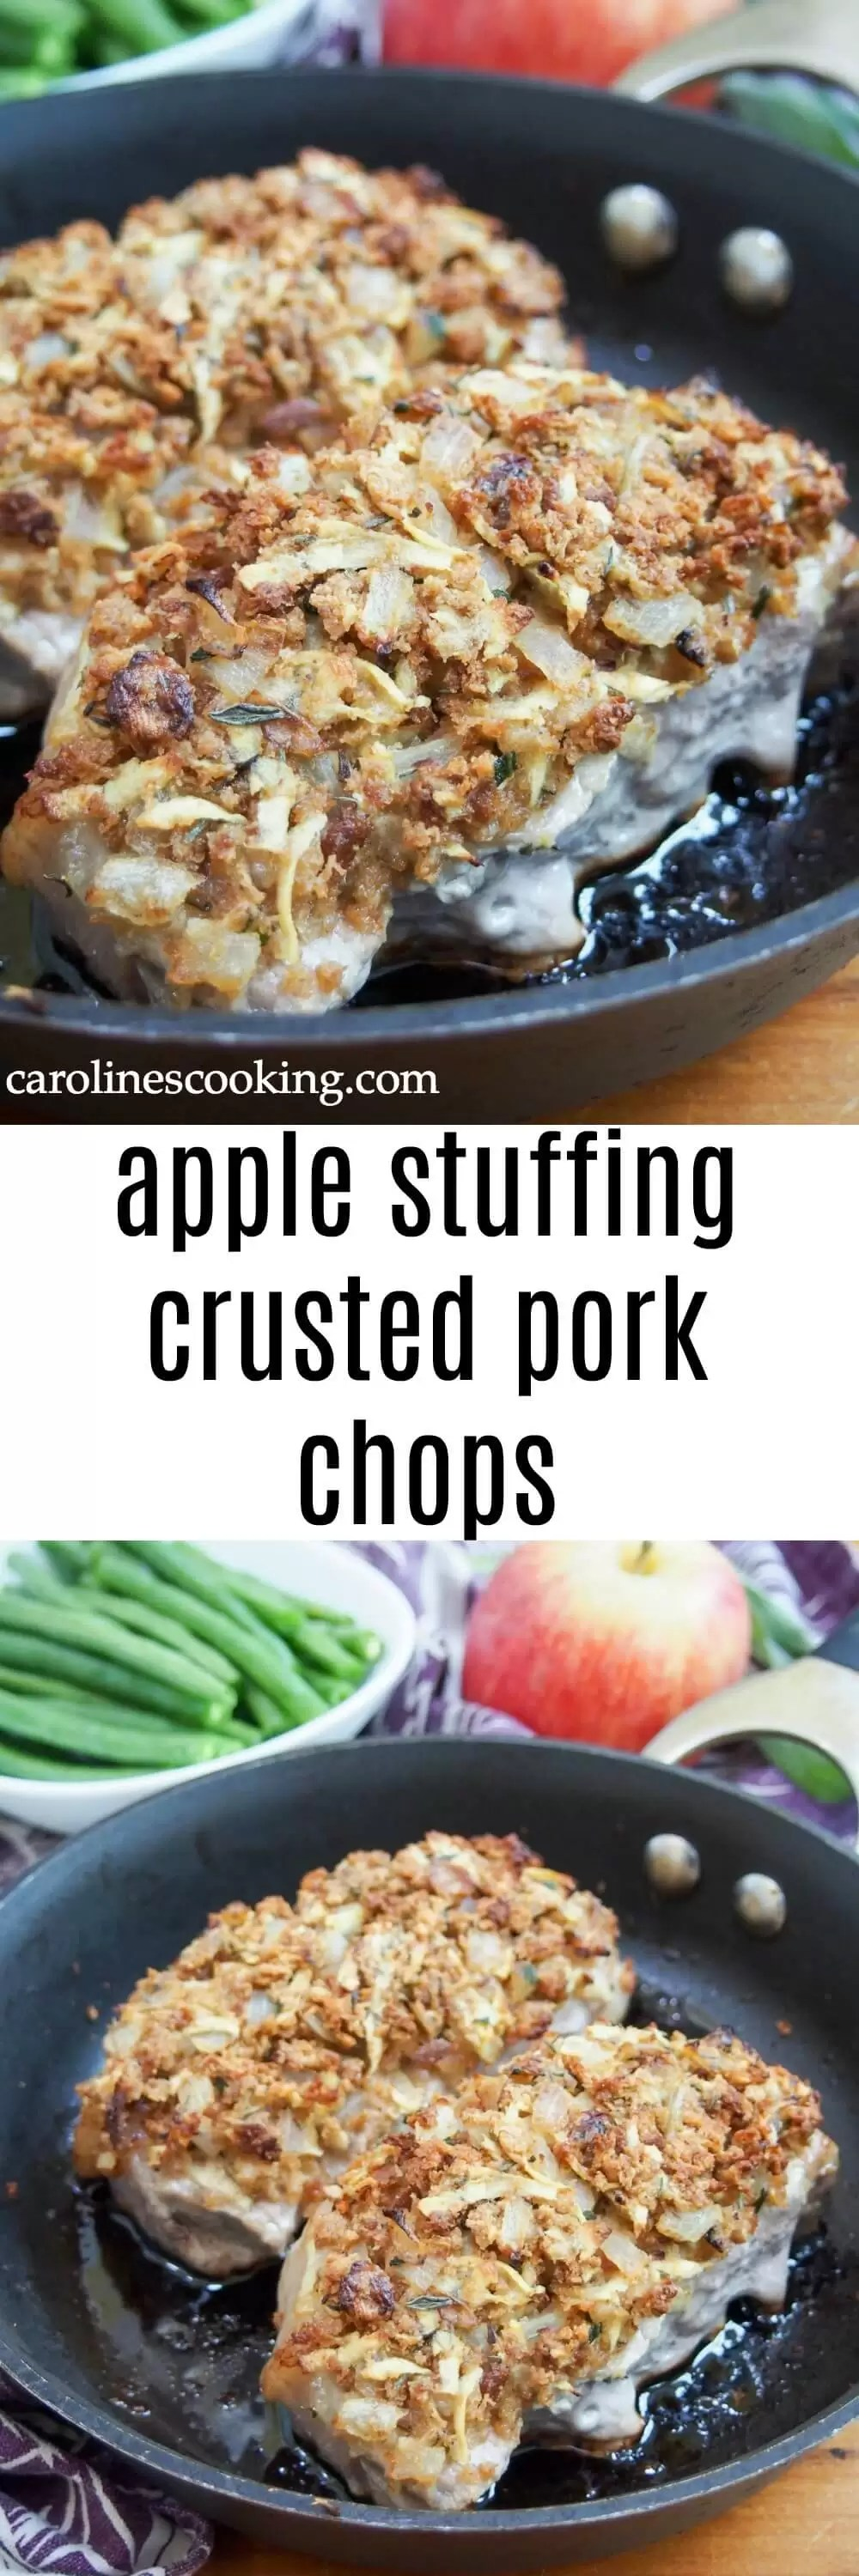 These apple stuffing crusted pork chops are easy to make and full of fall flavors. Comforting, flavorful and a great main for any night of the week. #apple #pork #stuffing